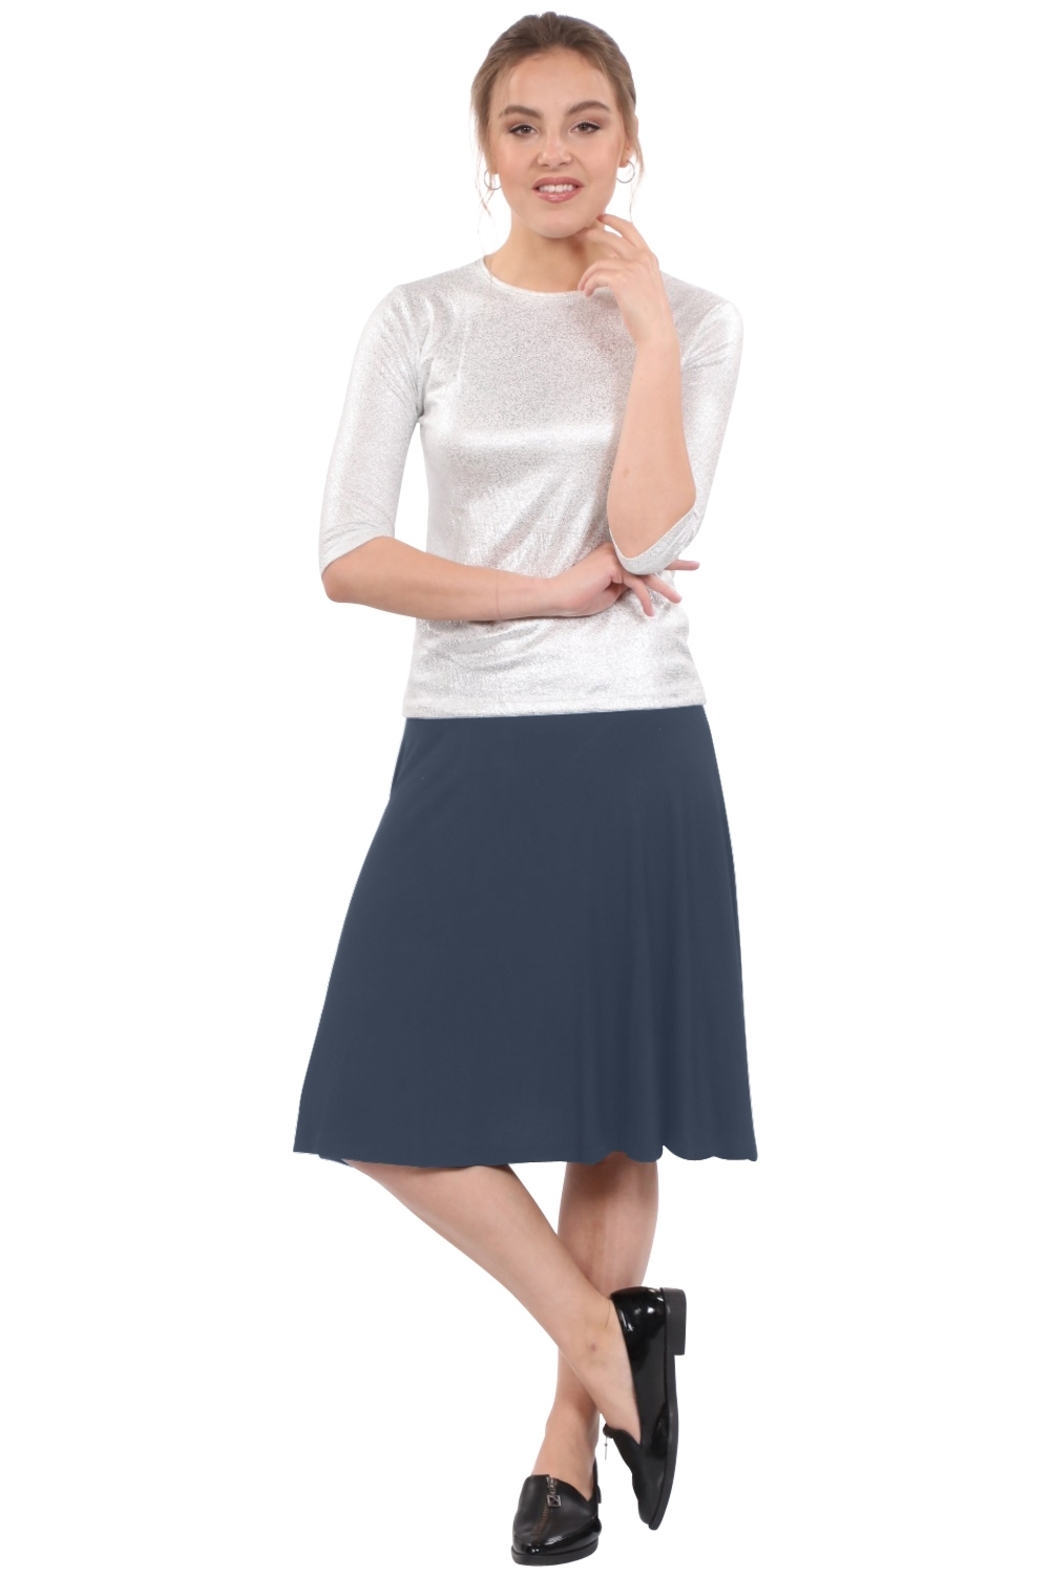 Kosher Casual Knee-Length Skater Skirt with Full A-line Cut - Main Image